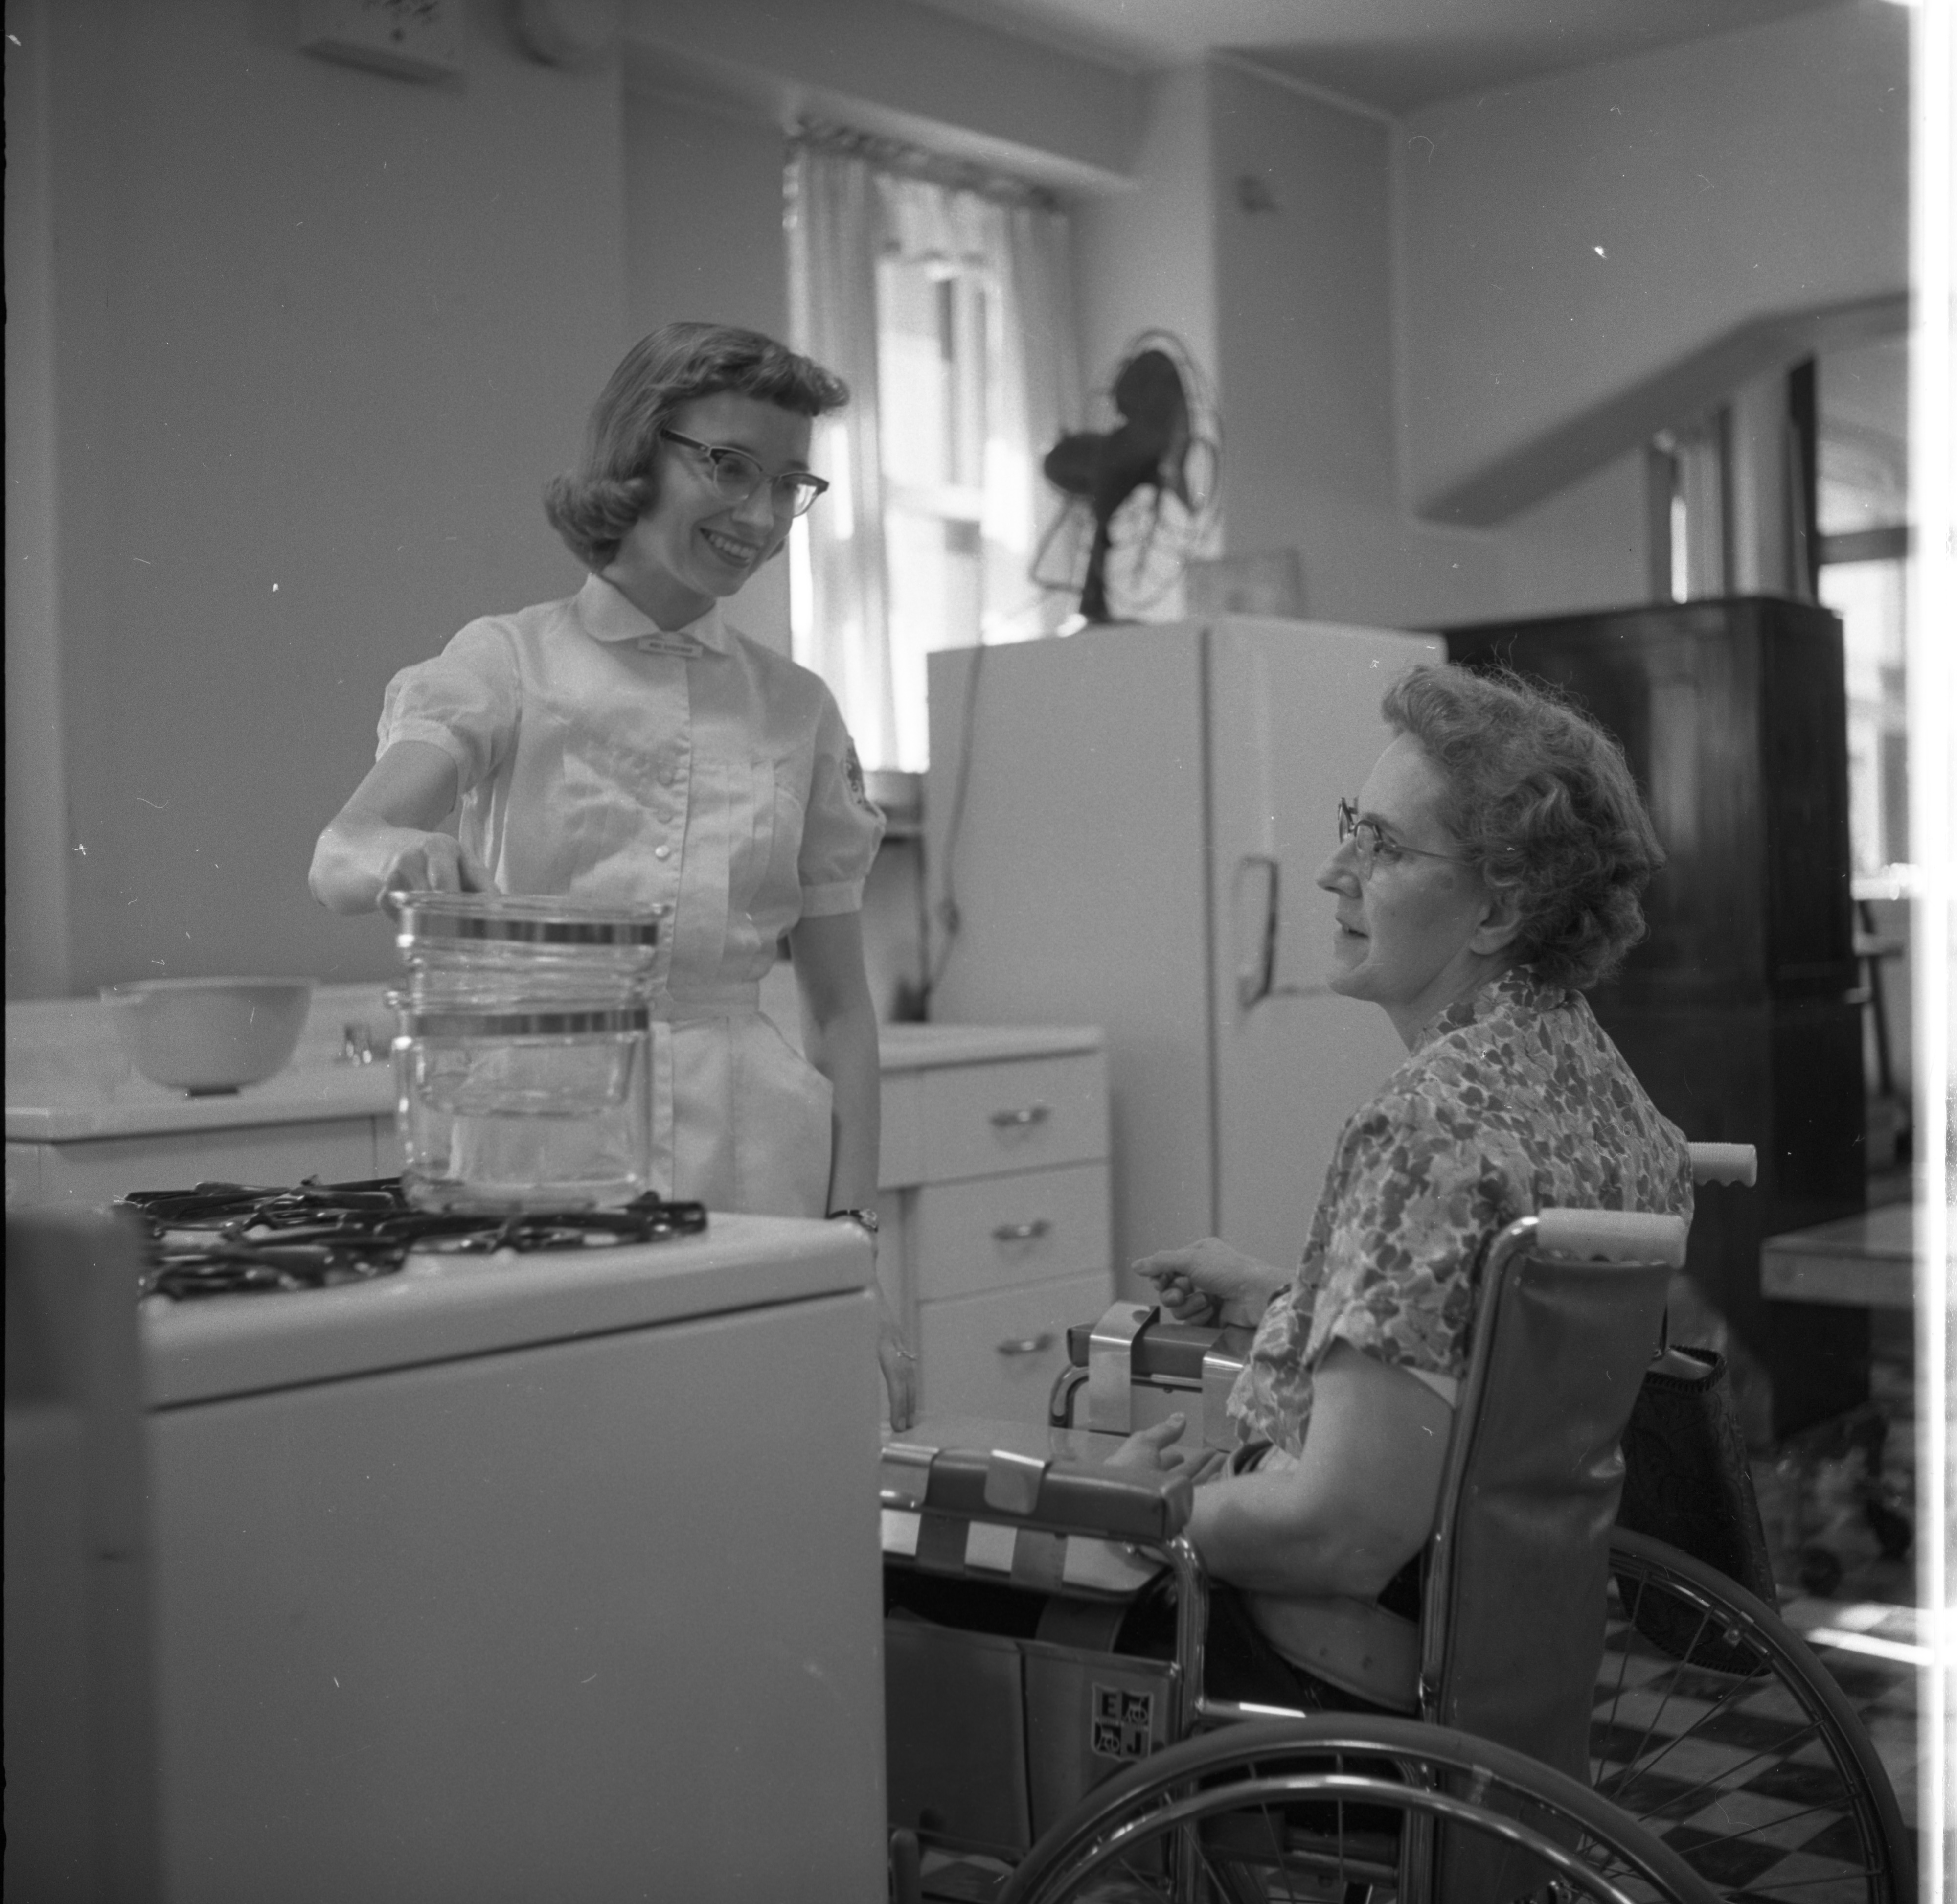 Handicapped Homemaker Olive Stone Learns Adaptive Cooking Skills at University Hospital, September 1958 image